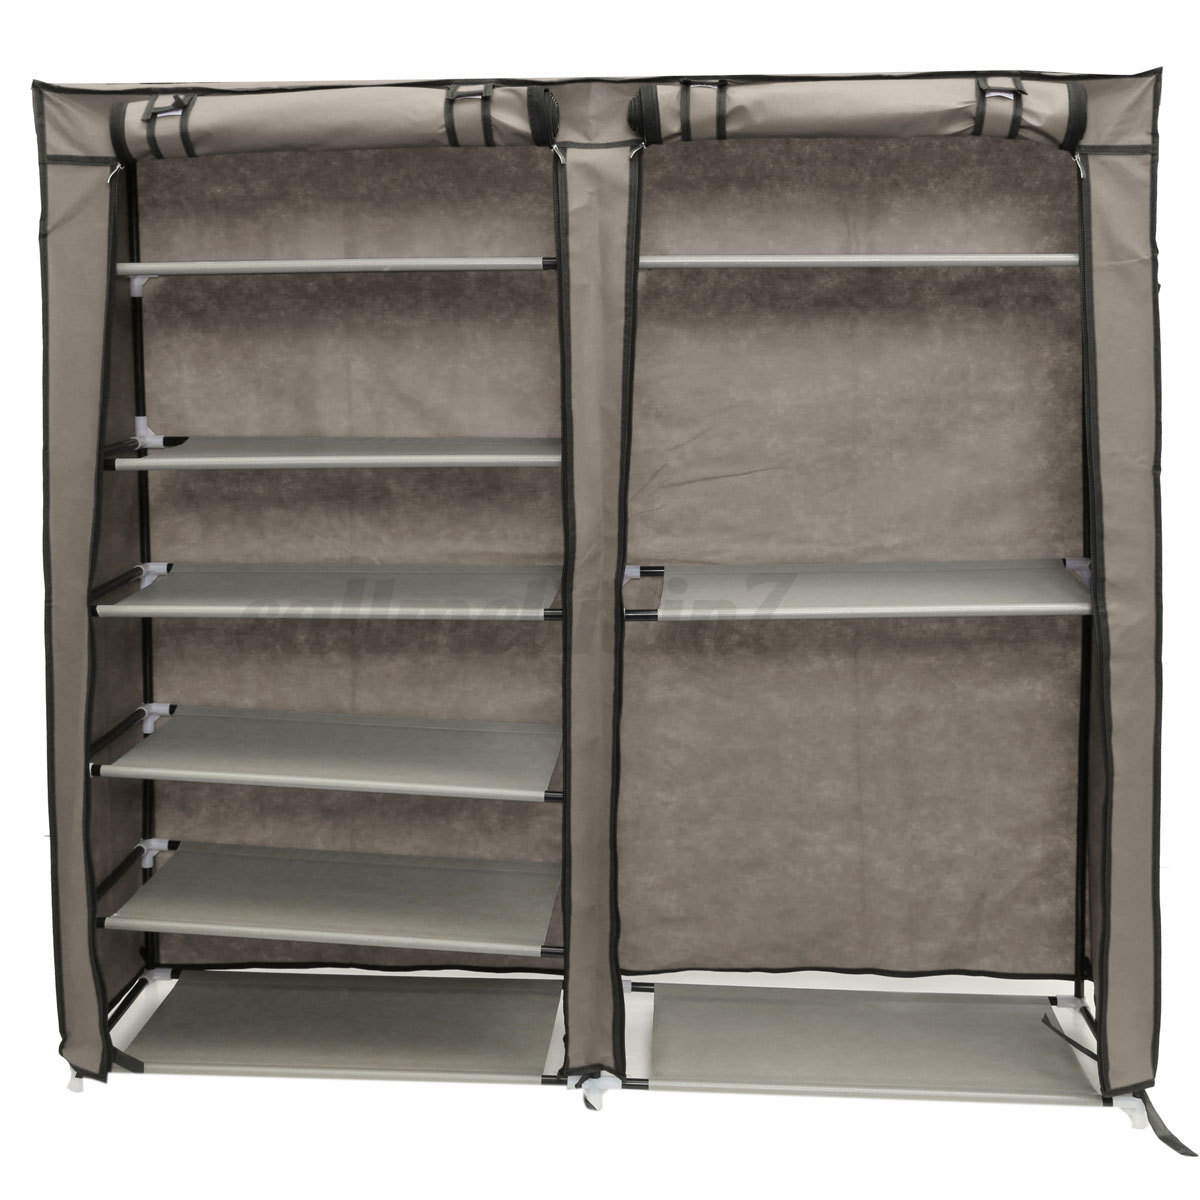 7-Tier-2-Rows-Doors-Large-Shoe-Cabinet-  sc 1 st  eBay & 7-Tier 2 Rows Doors Large Shoe Cabinet Rack Shoes Stand Storage ...